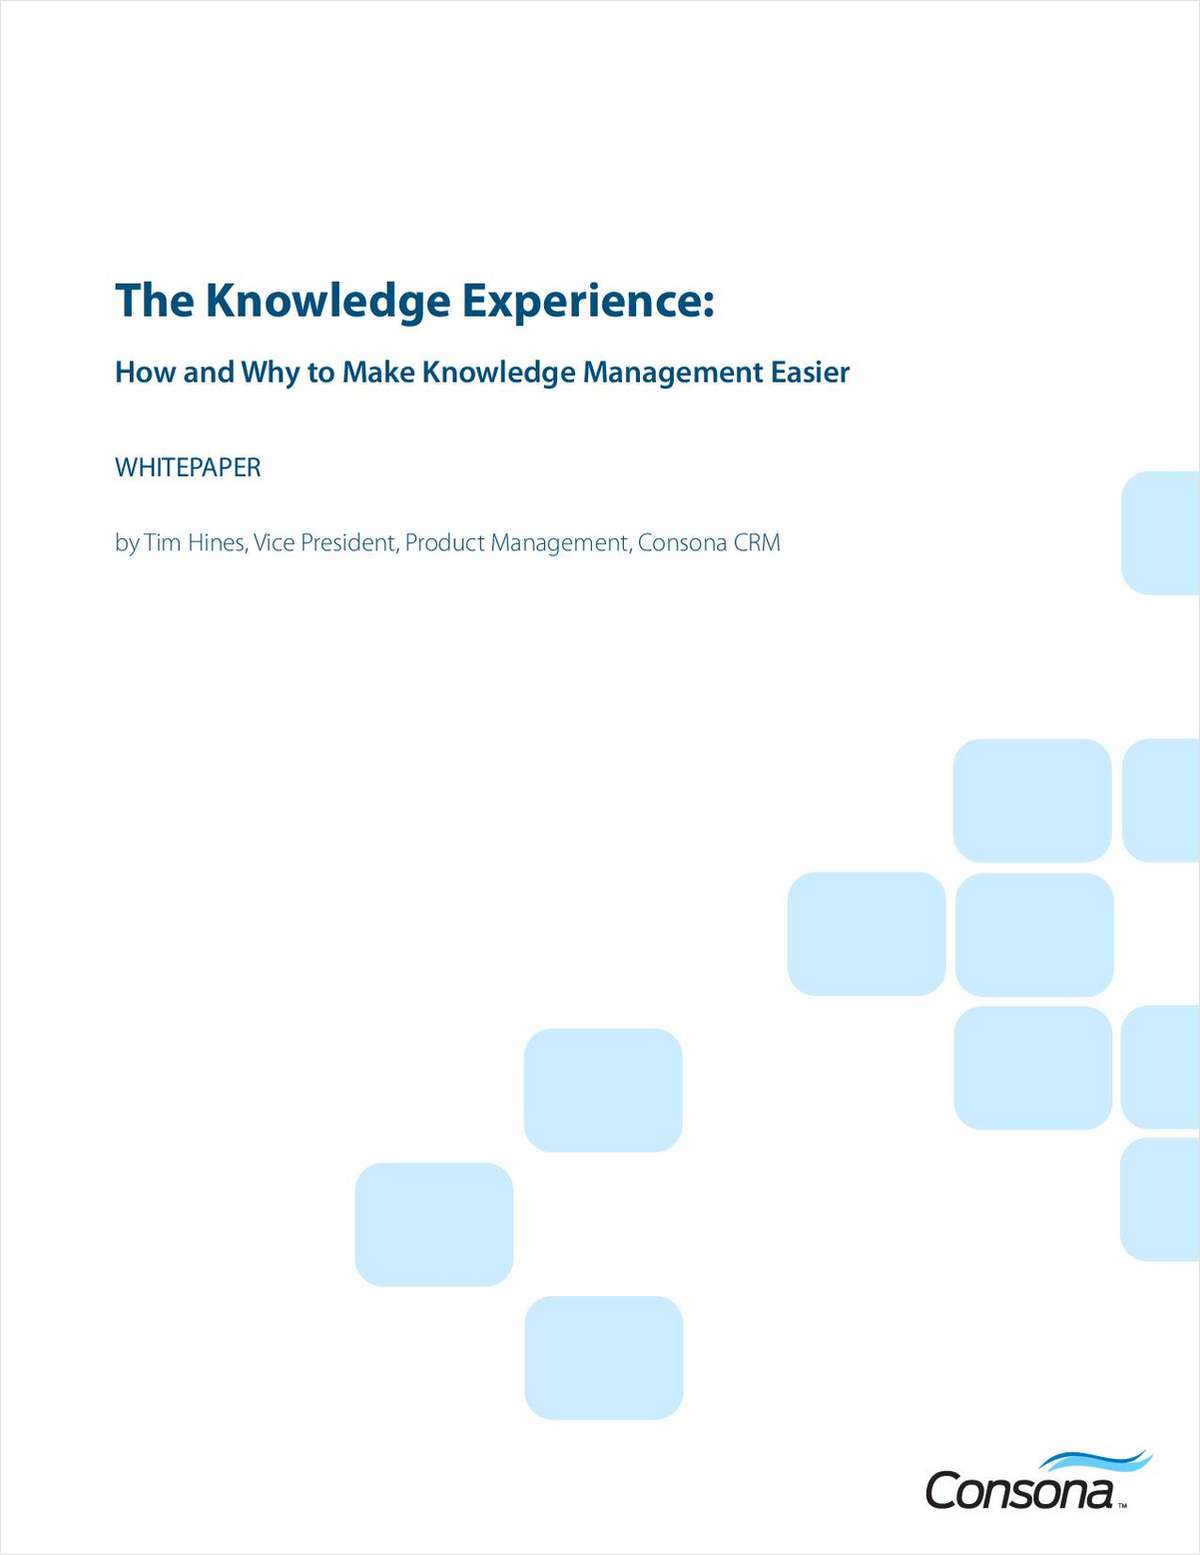 The High-Tech Knowledge Experience: How and Why to Make Knowledge Management Easier